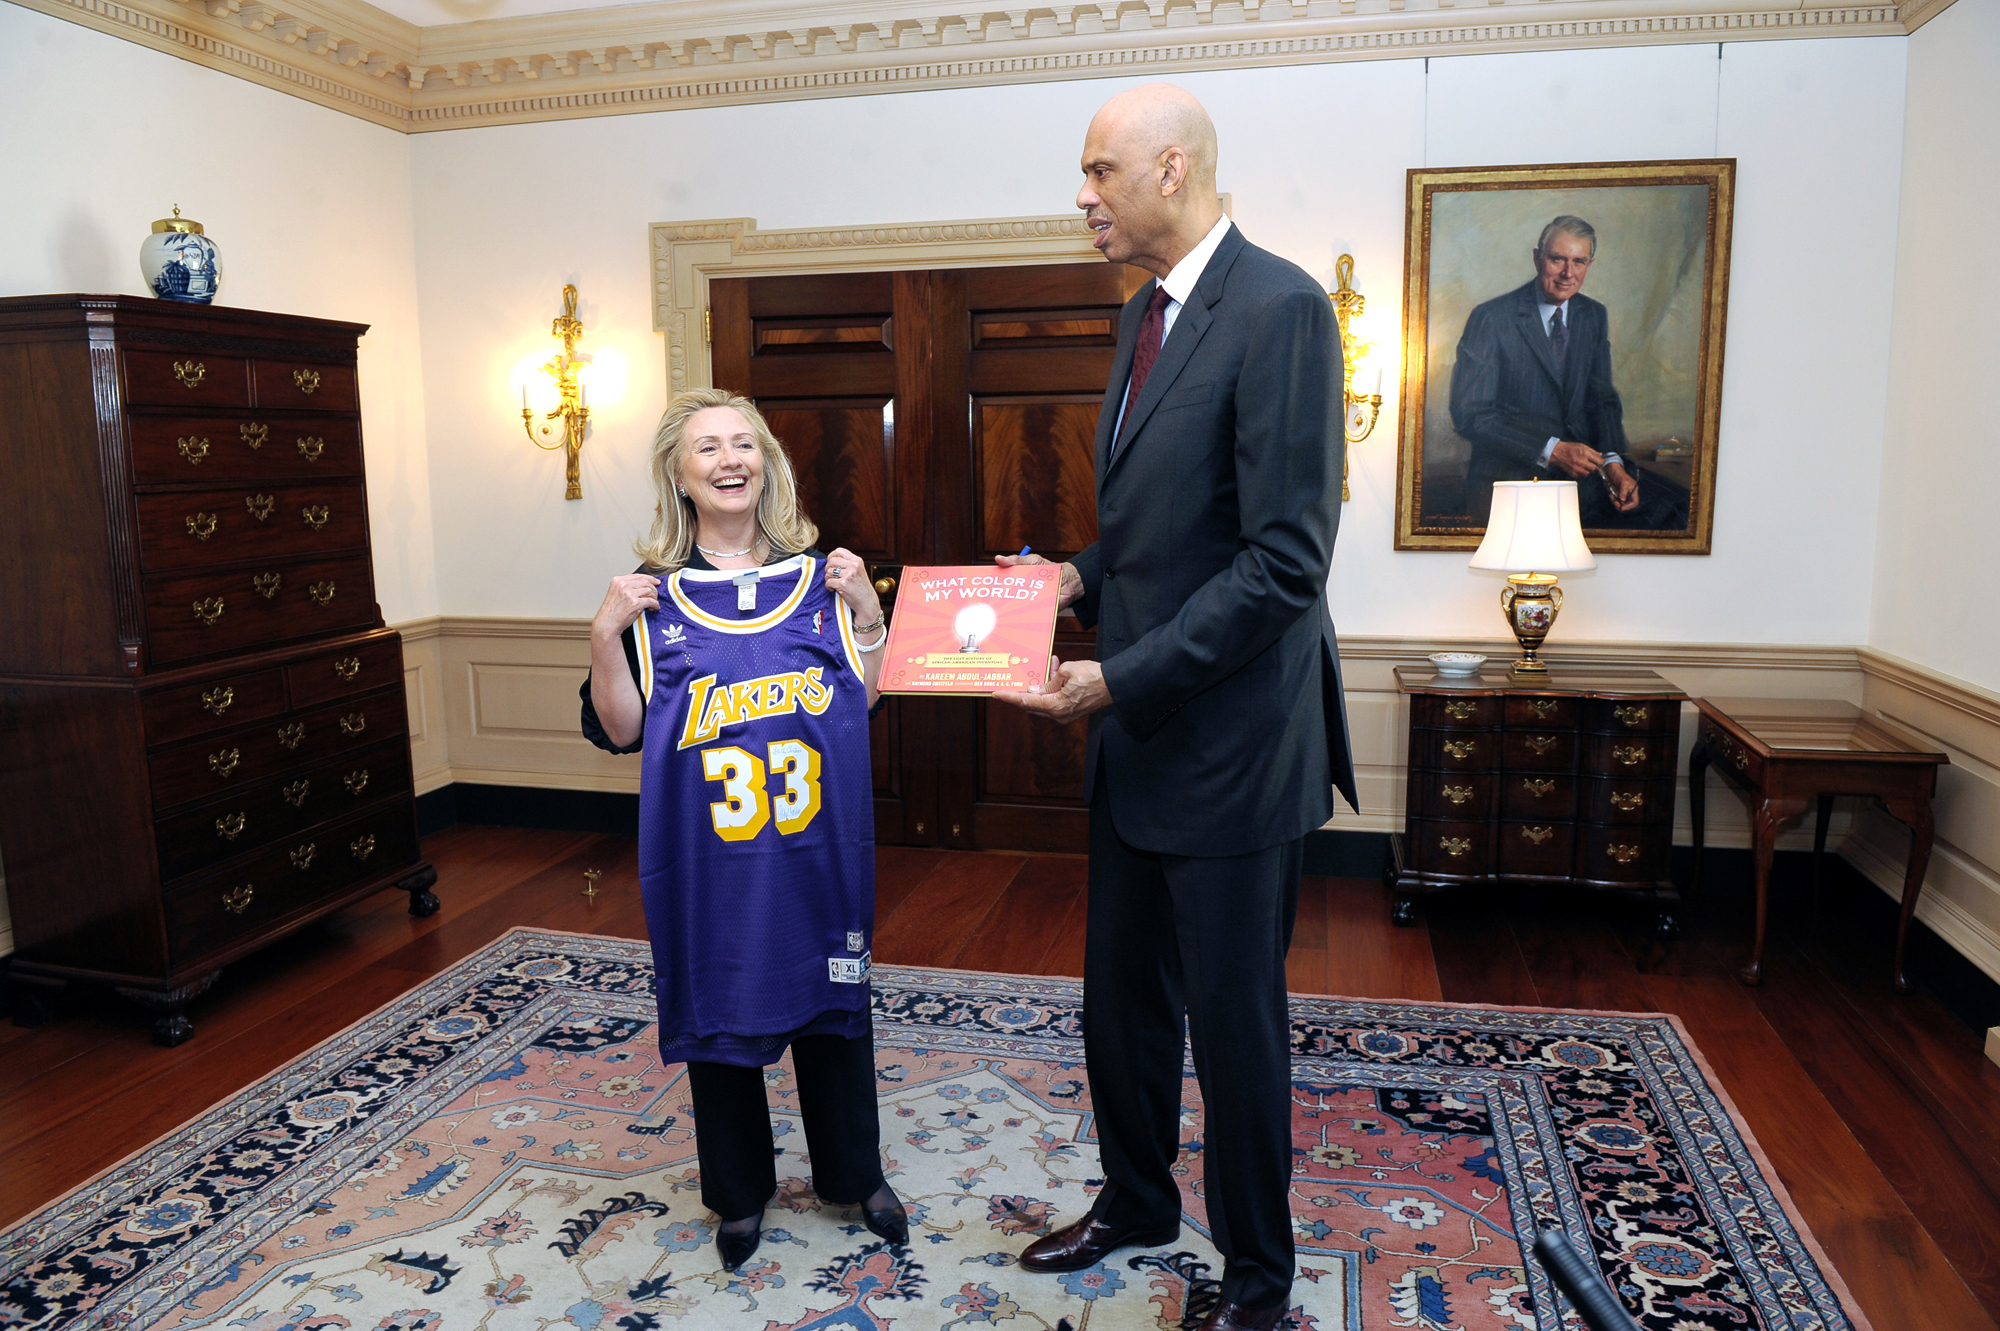 Retired NBA legend Kareem Abdul-Jabbar presents Hillary Clinton with a game jersey bearing his former number. (credit: Courtesy of the Department of State Via Wikimedia Commons)